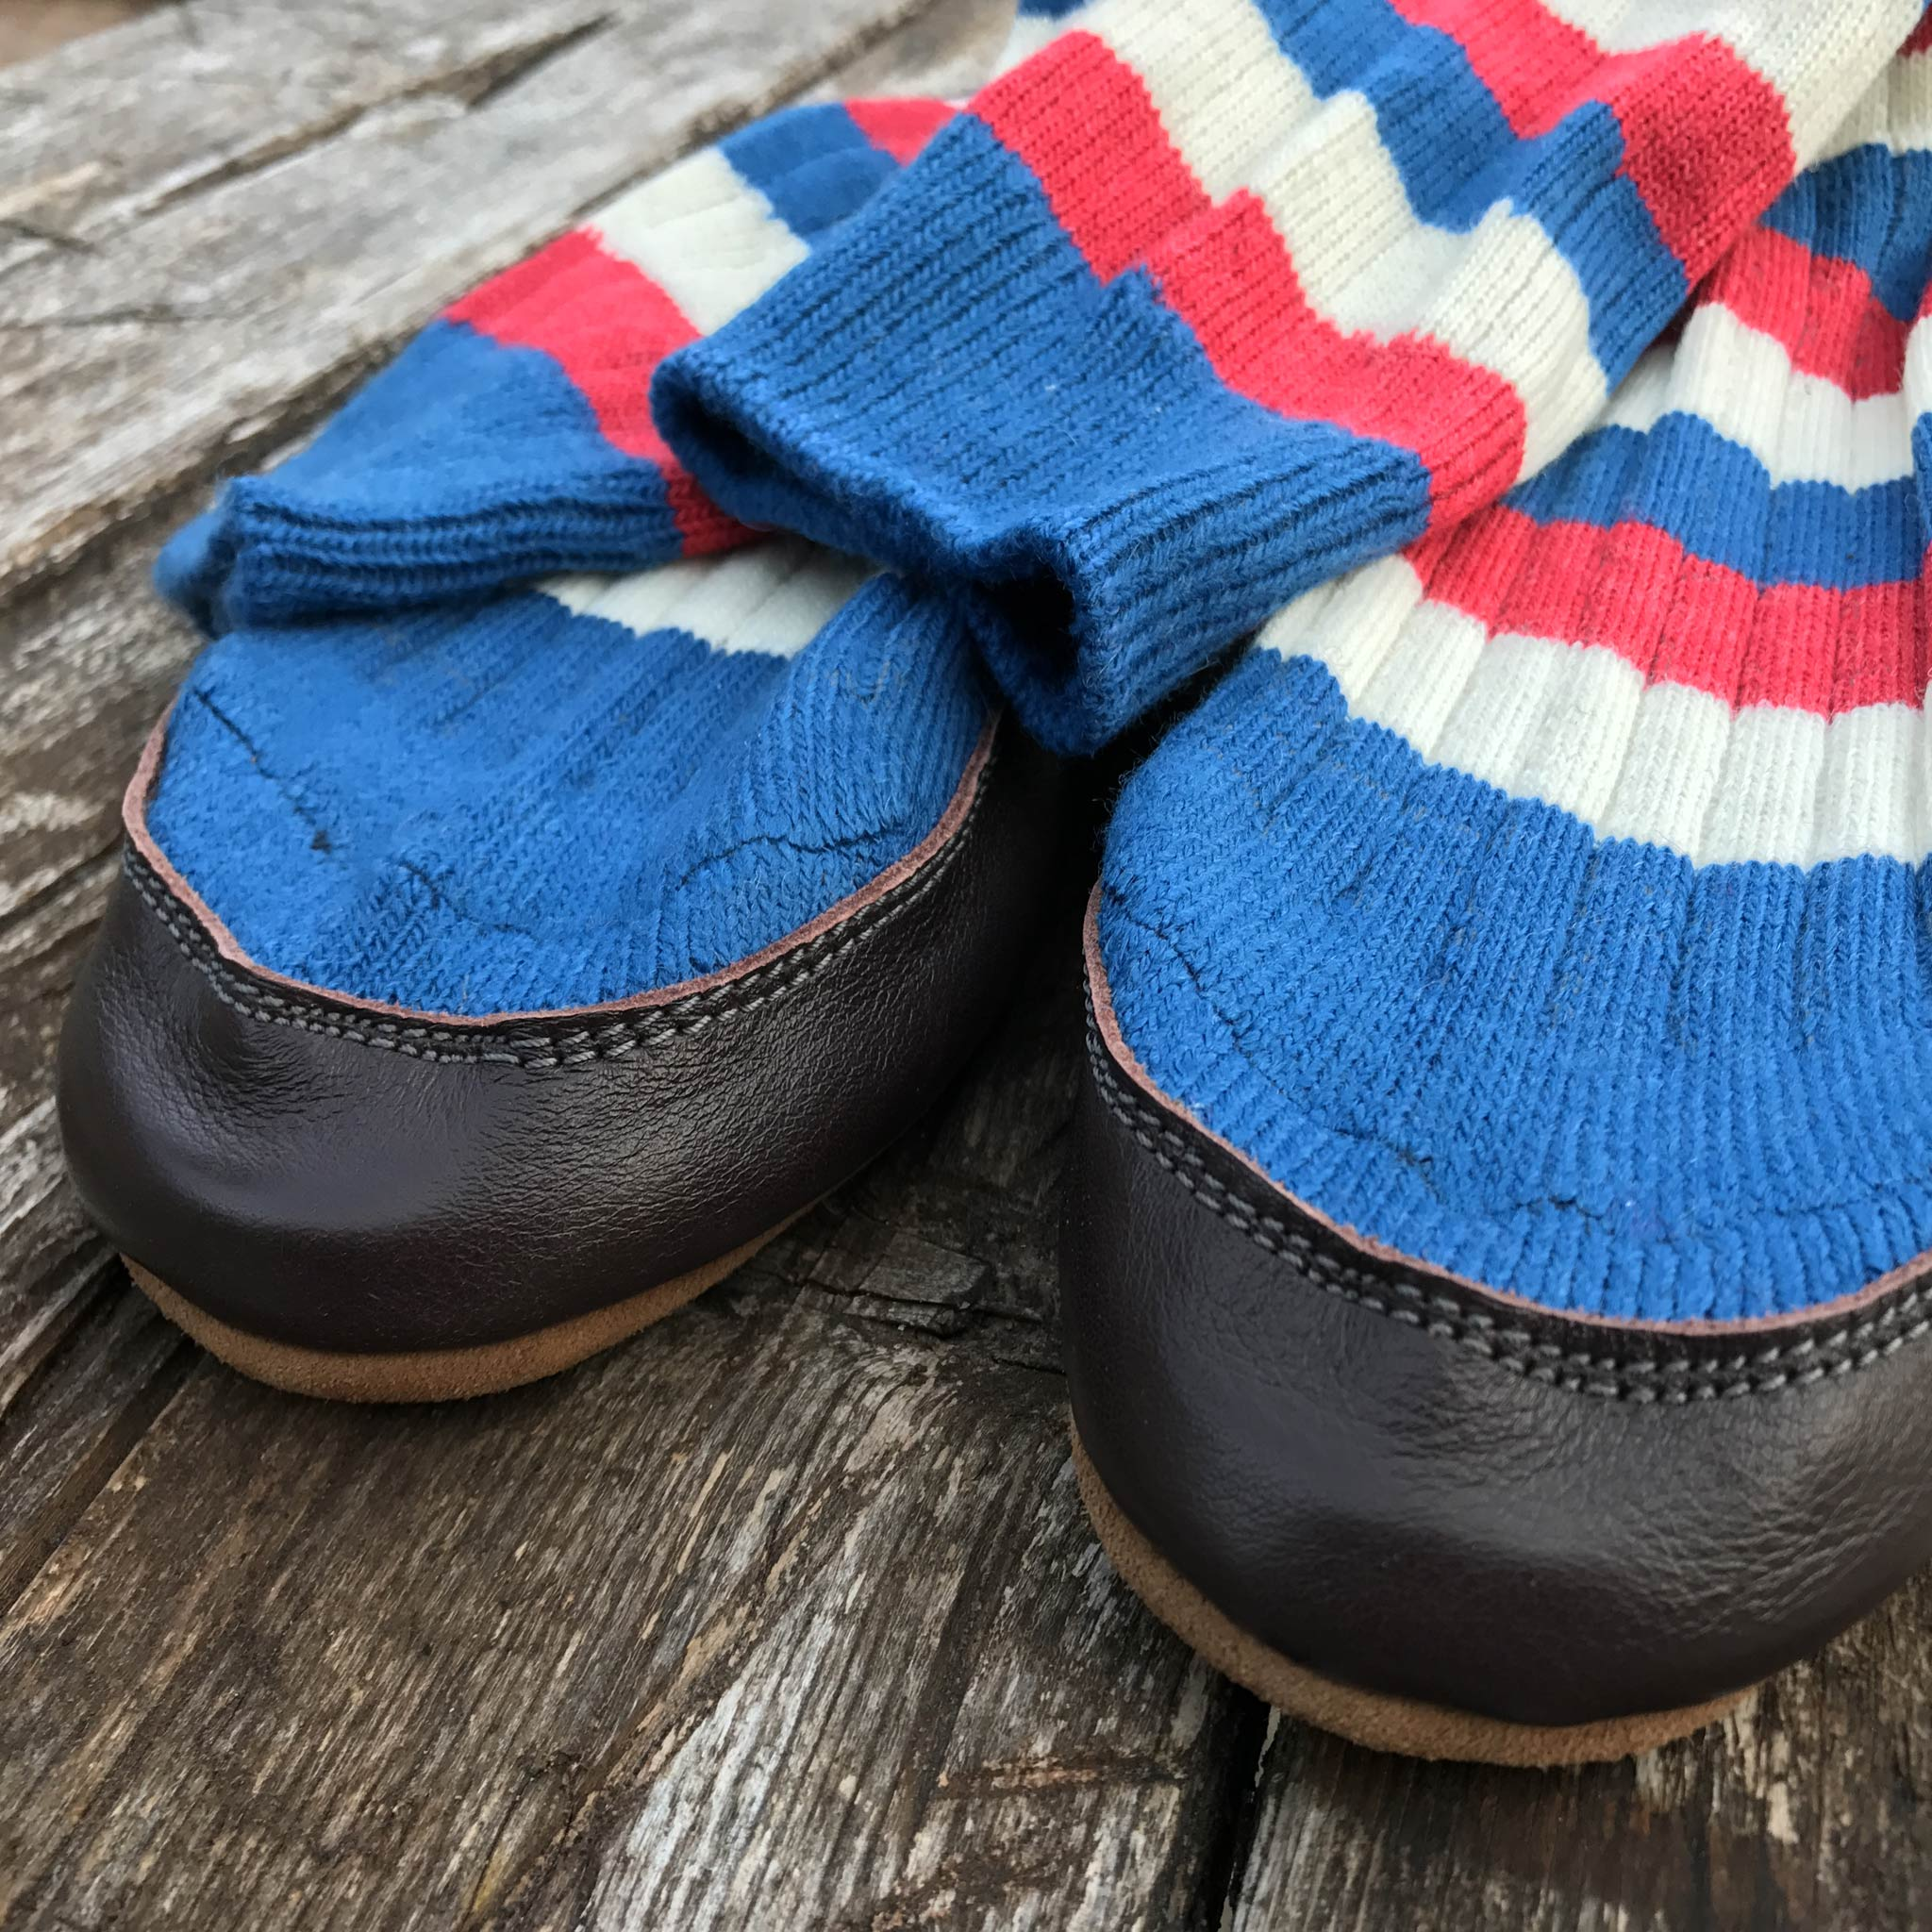 Slipper Sock red, white and blue stripe - front view